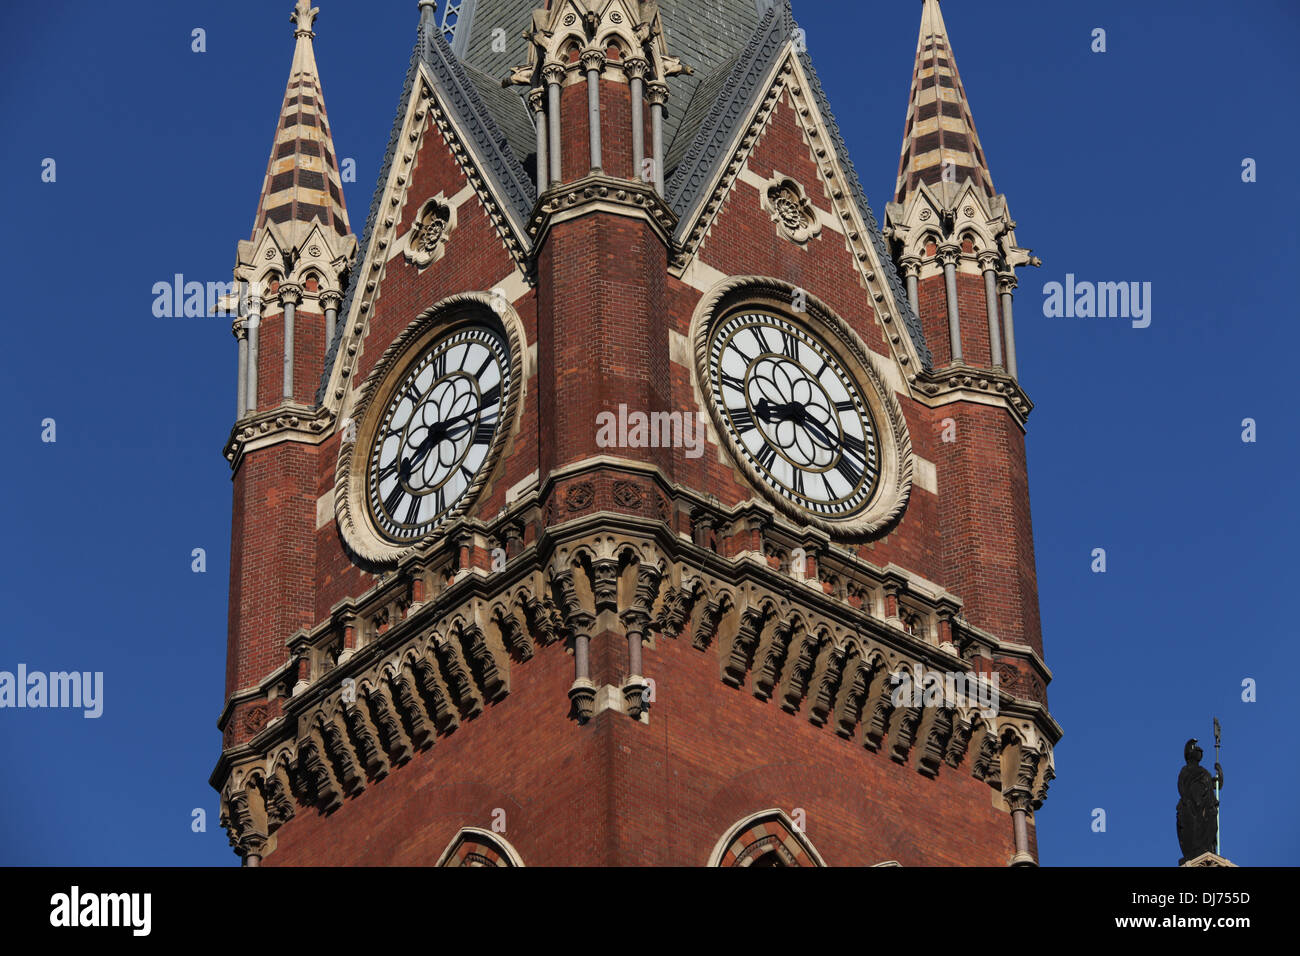 The grand clock tower of Saint Pancras Railway station in London. Showing two faces of the clock . - Stock Image